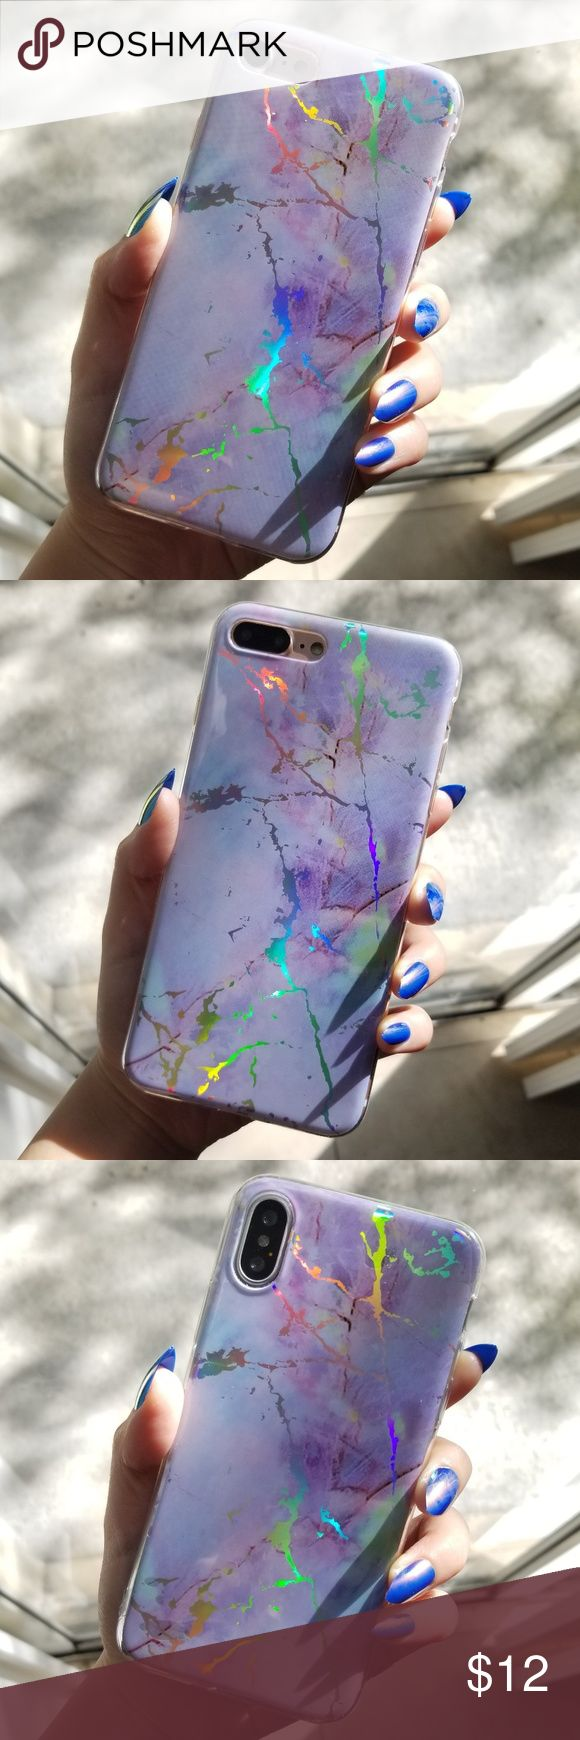 iPhone Purple Holo Marble Case Brand new  Available for :  iPhone 5 iPhone 5s iPhone SE iPhone 6 iPhone 6s iPhone 6 Plus iPhone 6s Plus  iPhone 7 iPhone 7 Plus iPhone 8 iPhone 8 Plus iPhone X Accessories Phone Cases